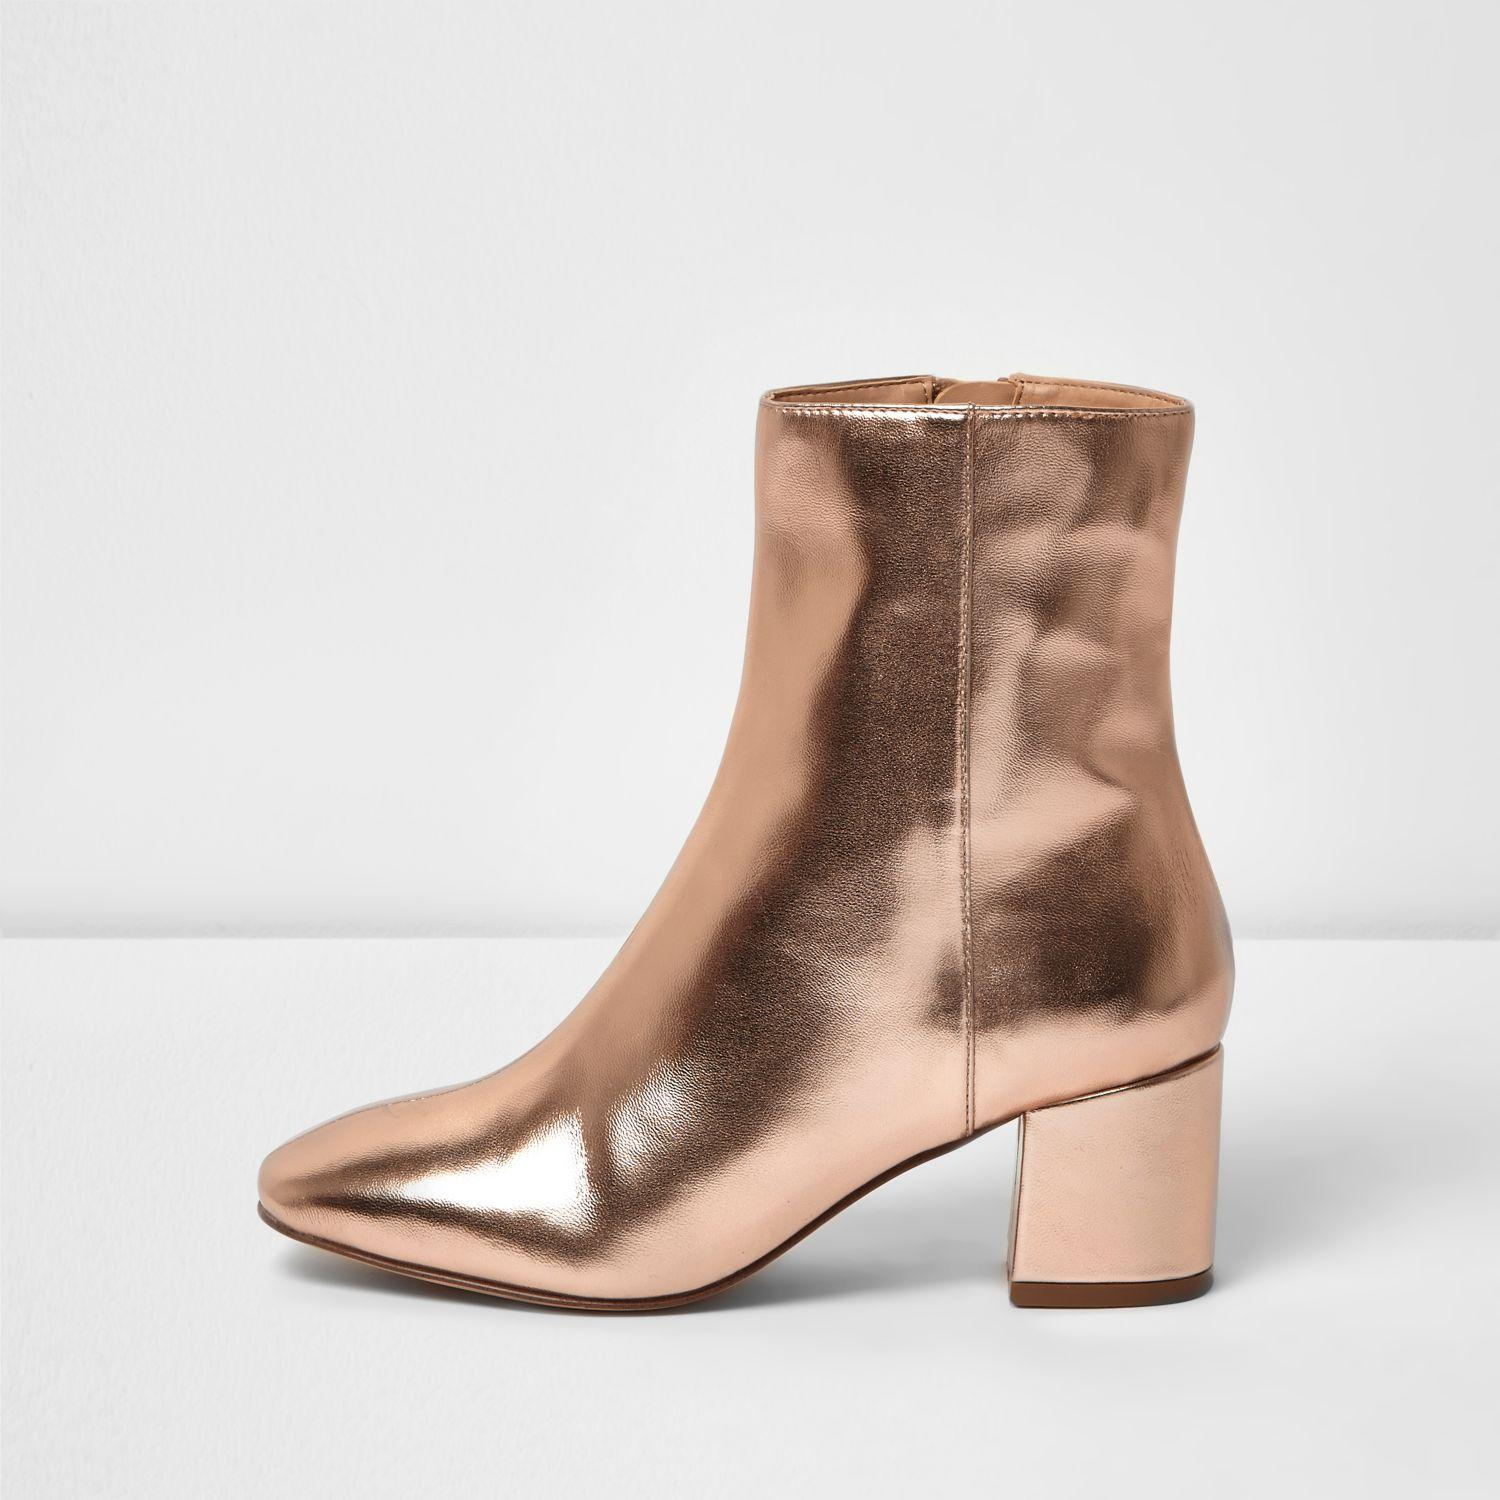 db65afaf998 River Island Rose Gold Block Heel Ankle Boot in Brown - Lyst